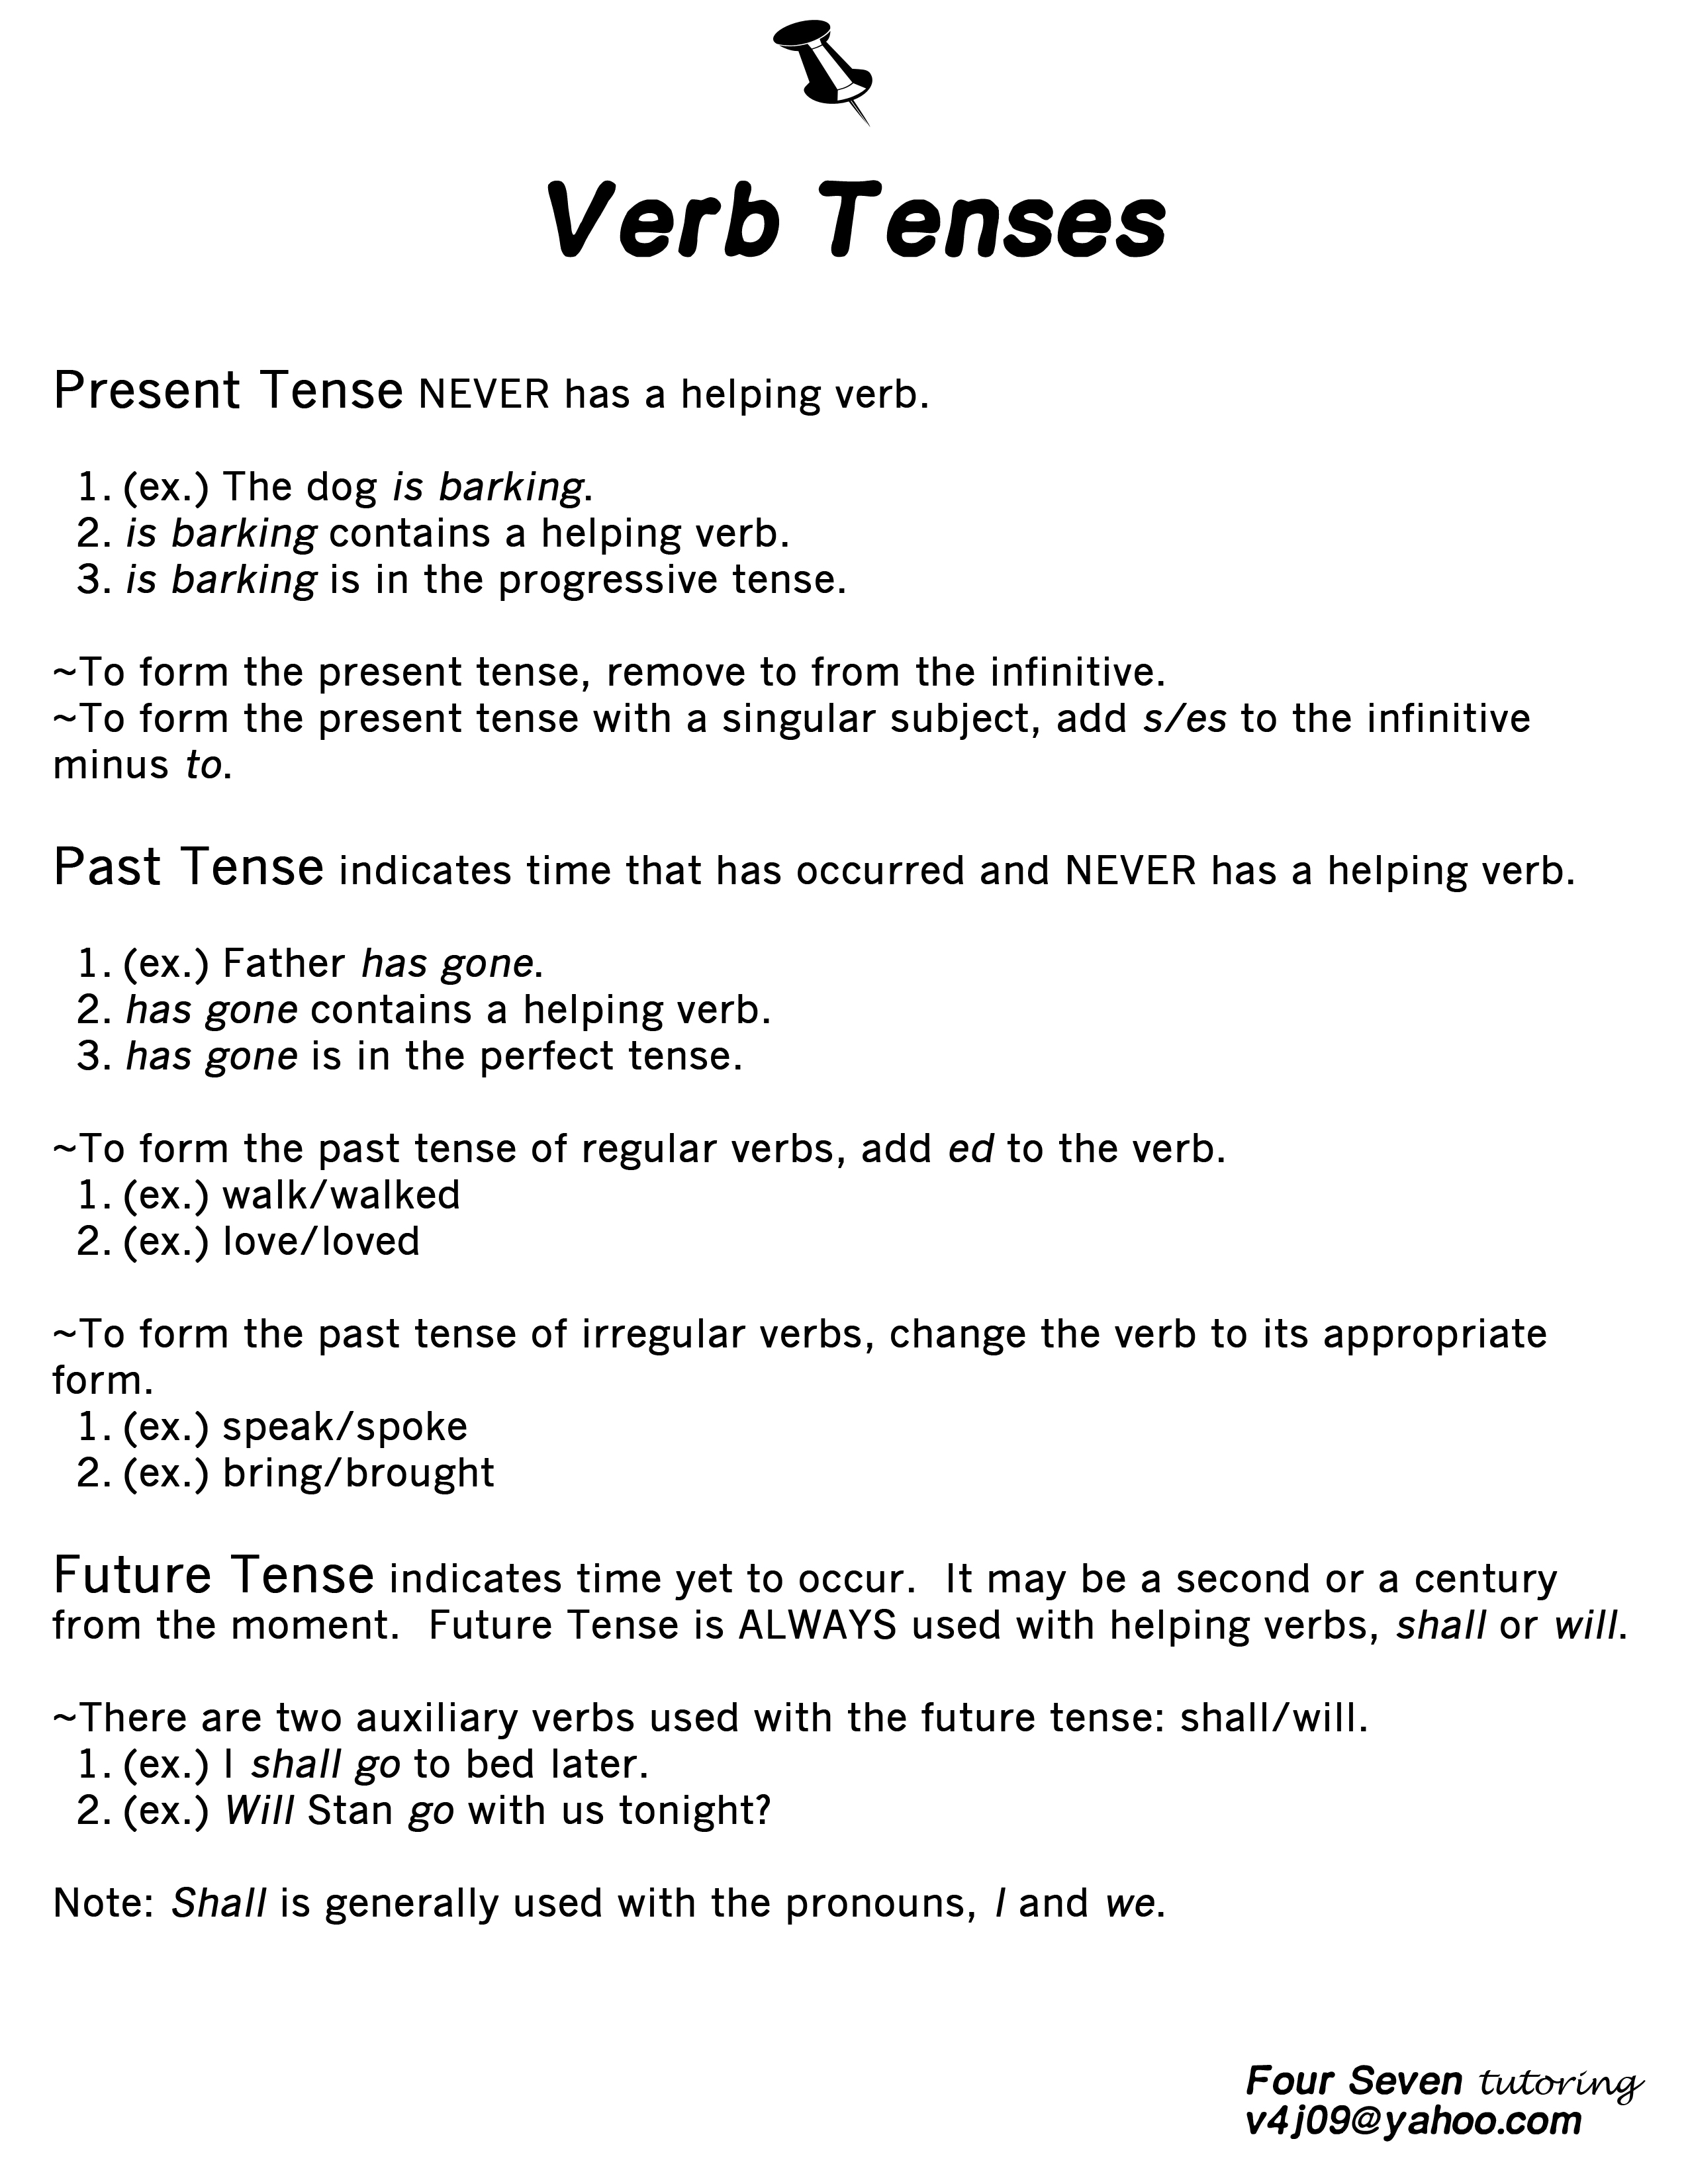 Verb Tenses Lesson 1 Resource